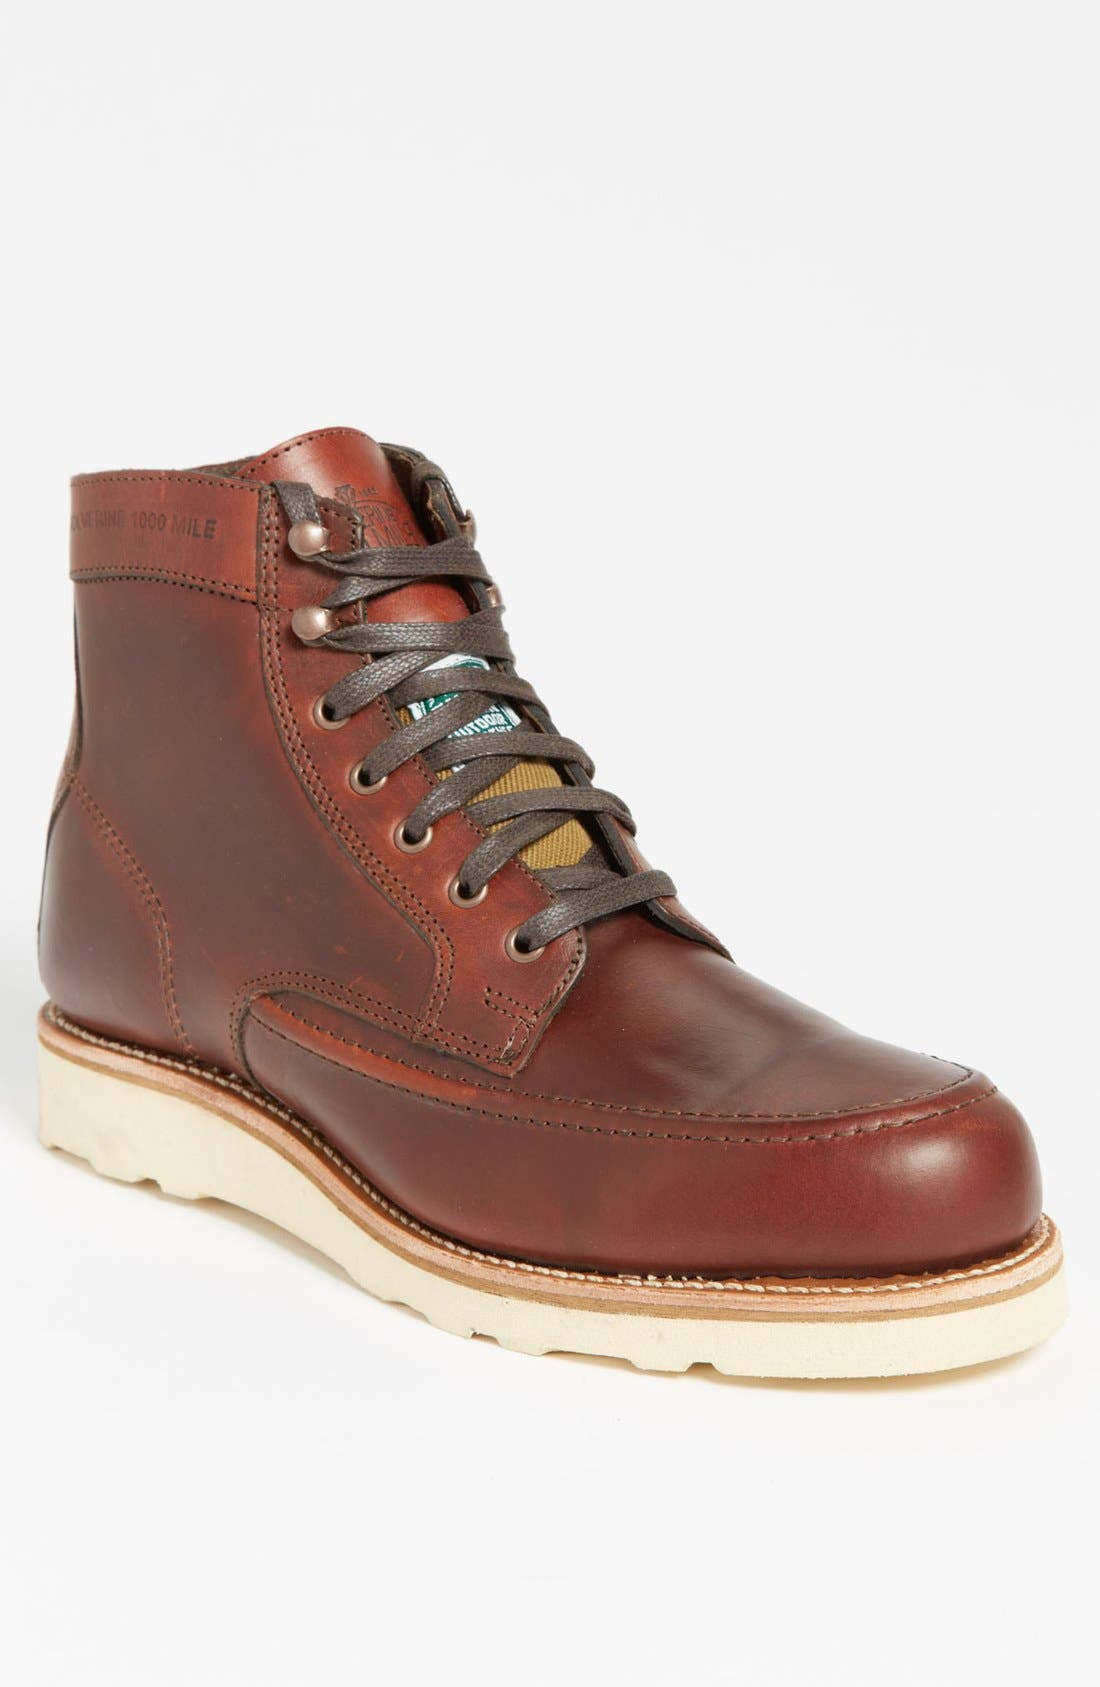 Alternate Image 1 Selected - Wolverine '1000 Mile - Emerson' Moc Toe Boot (Online Only)